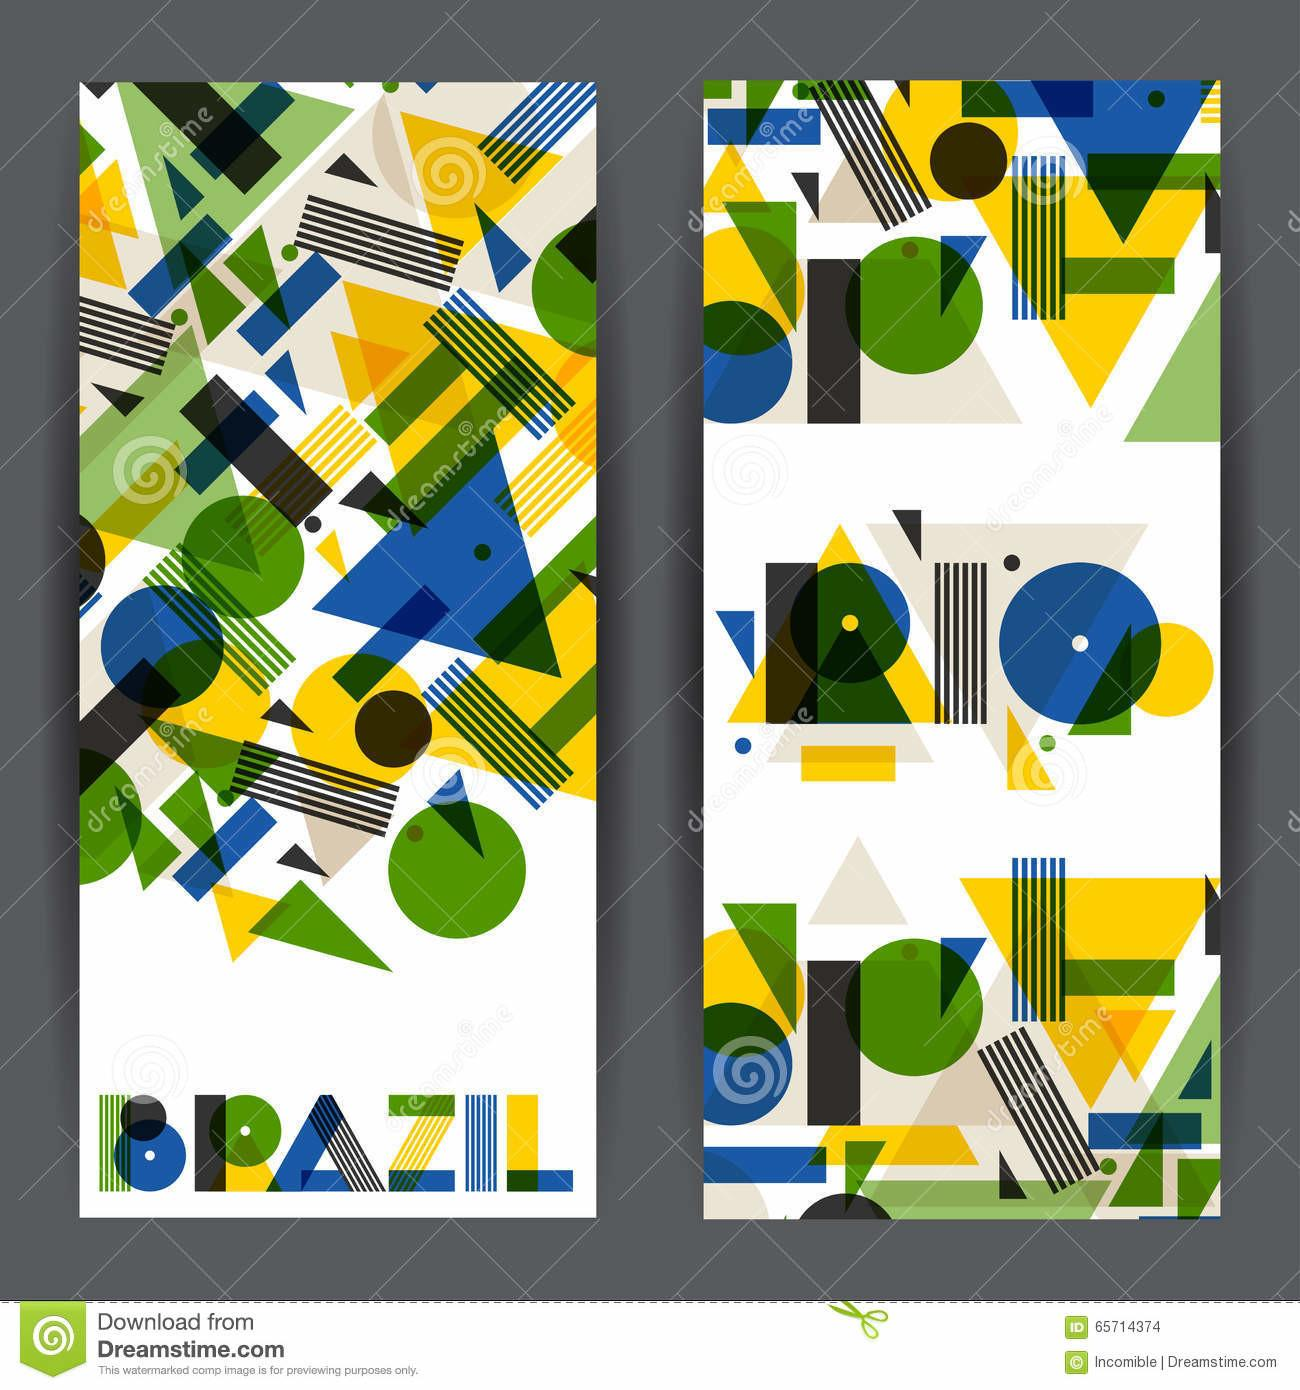 Brazil Rio Banners Abstract Geometric Style Design